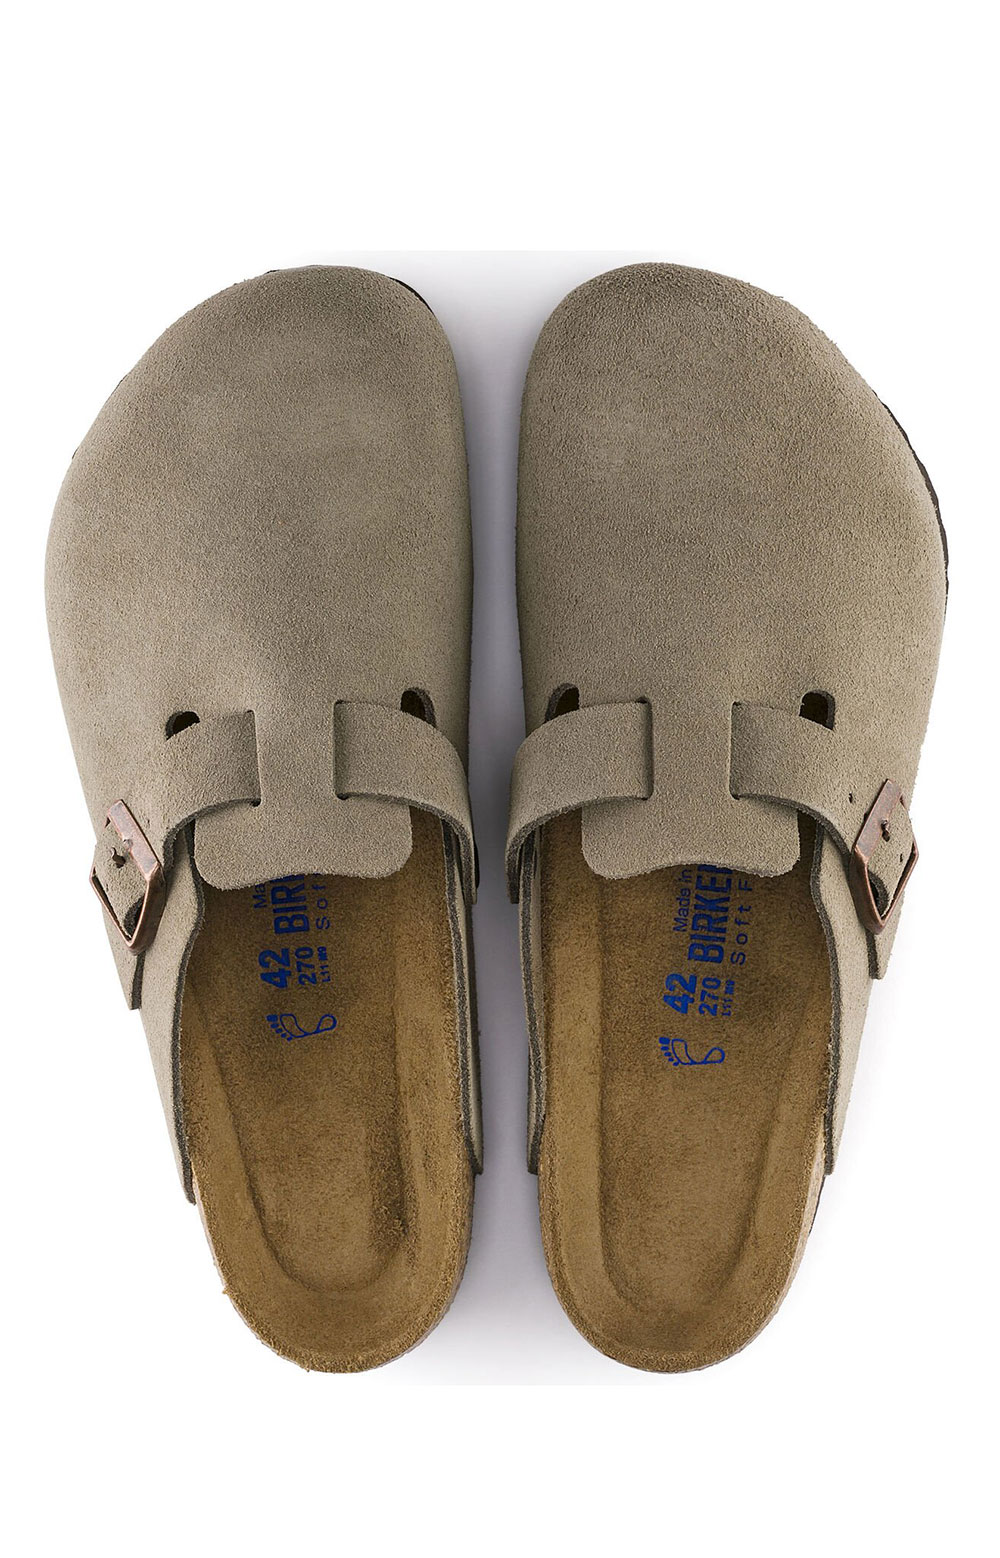 (0560771)Boston Soft Footbed Sandals - Taupe Suede  6